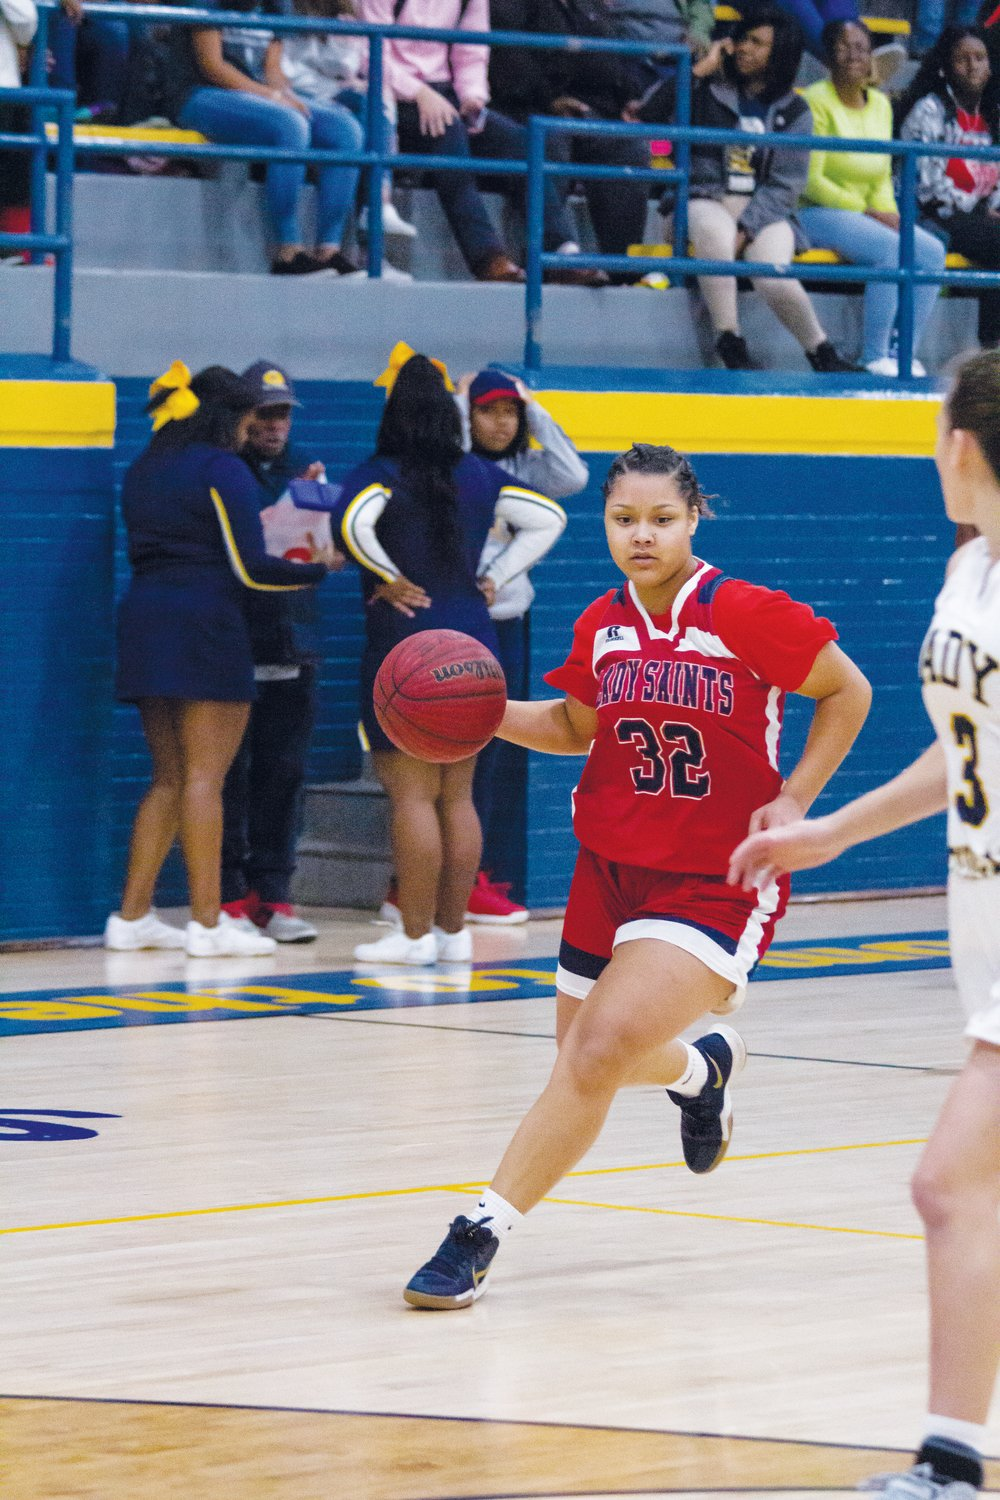 Alissa Meadows drives after a steal in the second quarter against Goldsboro. Meadows finished with 16 points on the night.